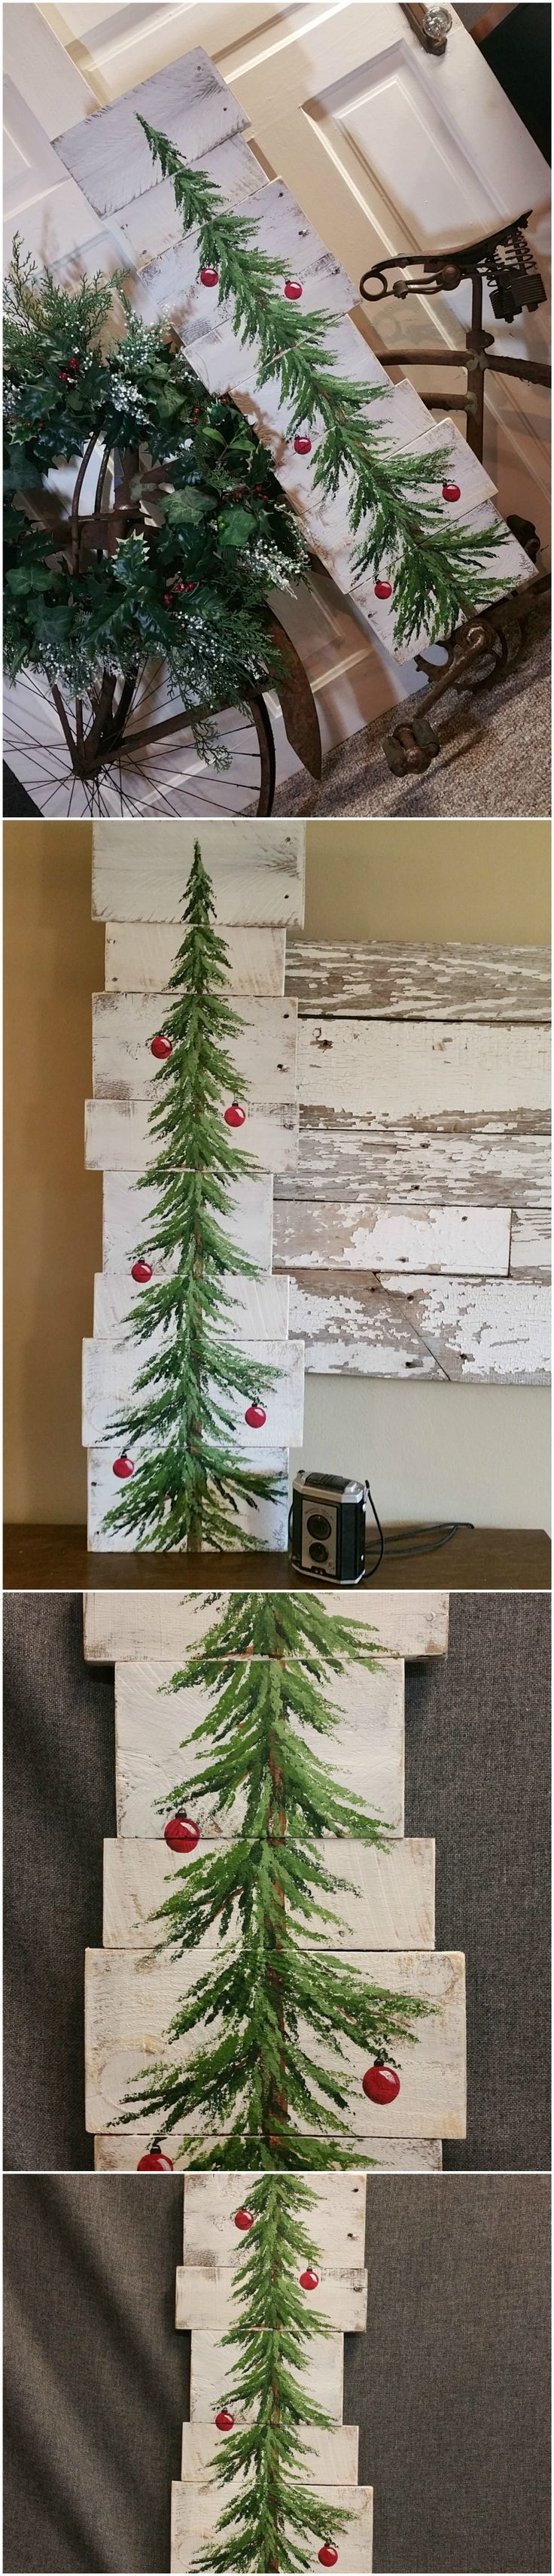 Non traditional christmas tree ideas - White Washed Red Bulbs Christmas Pine Tree Reclaimed Wood Pallet Art Christmas Hand